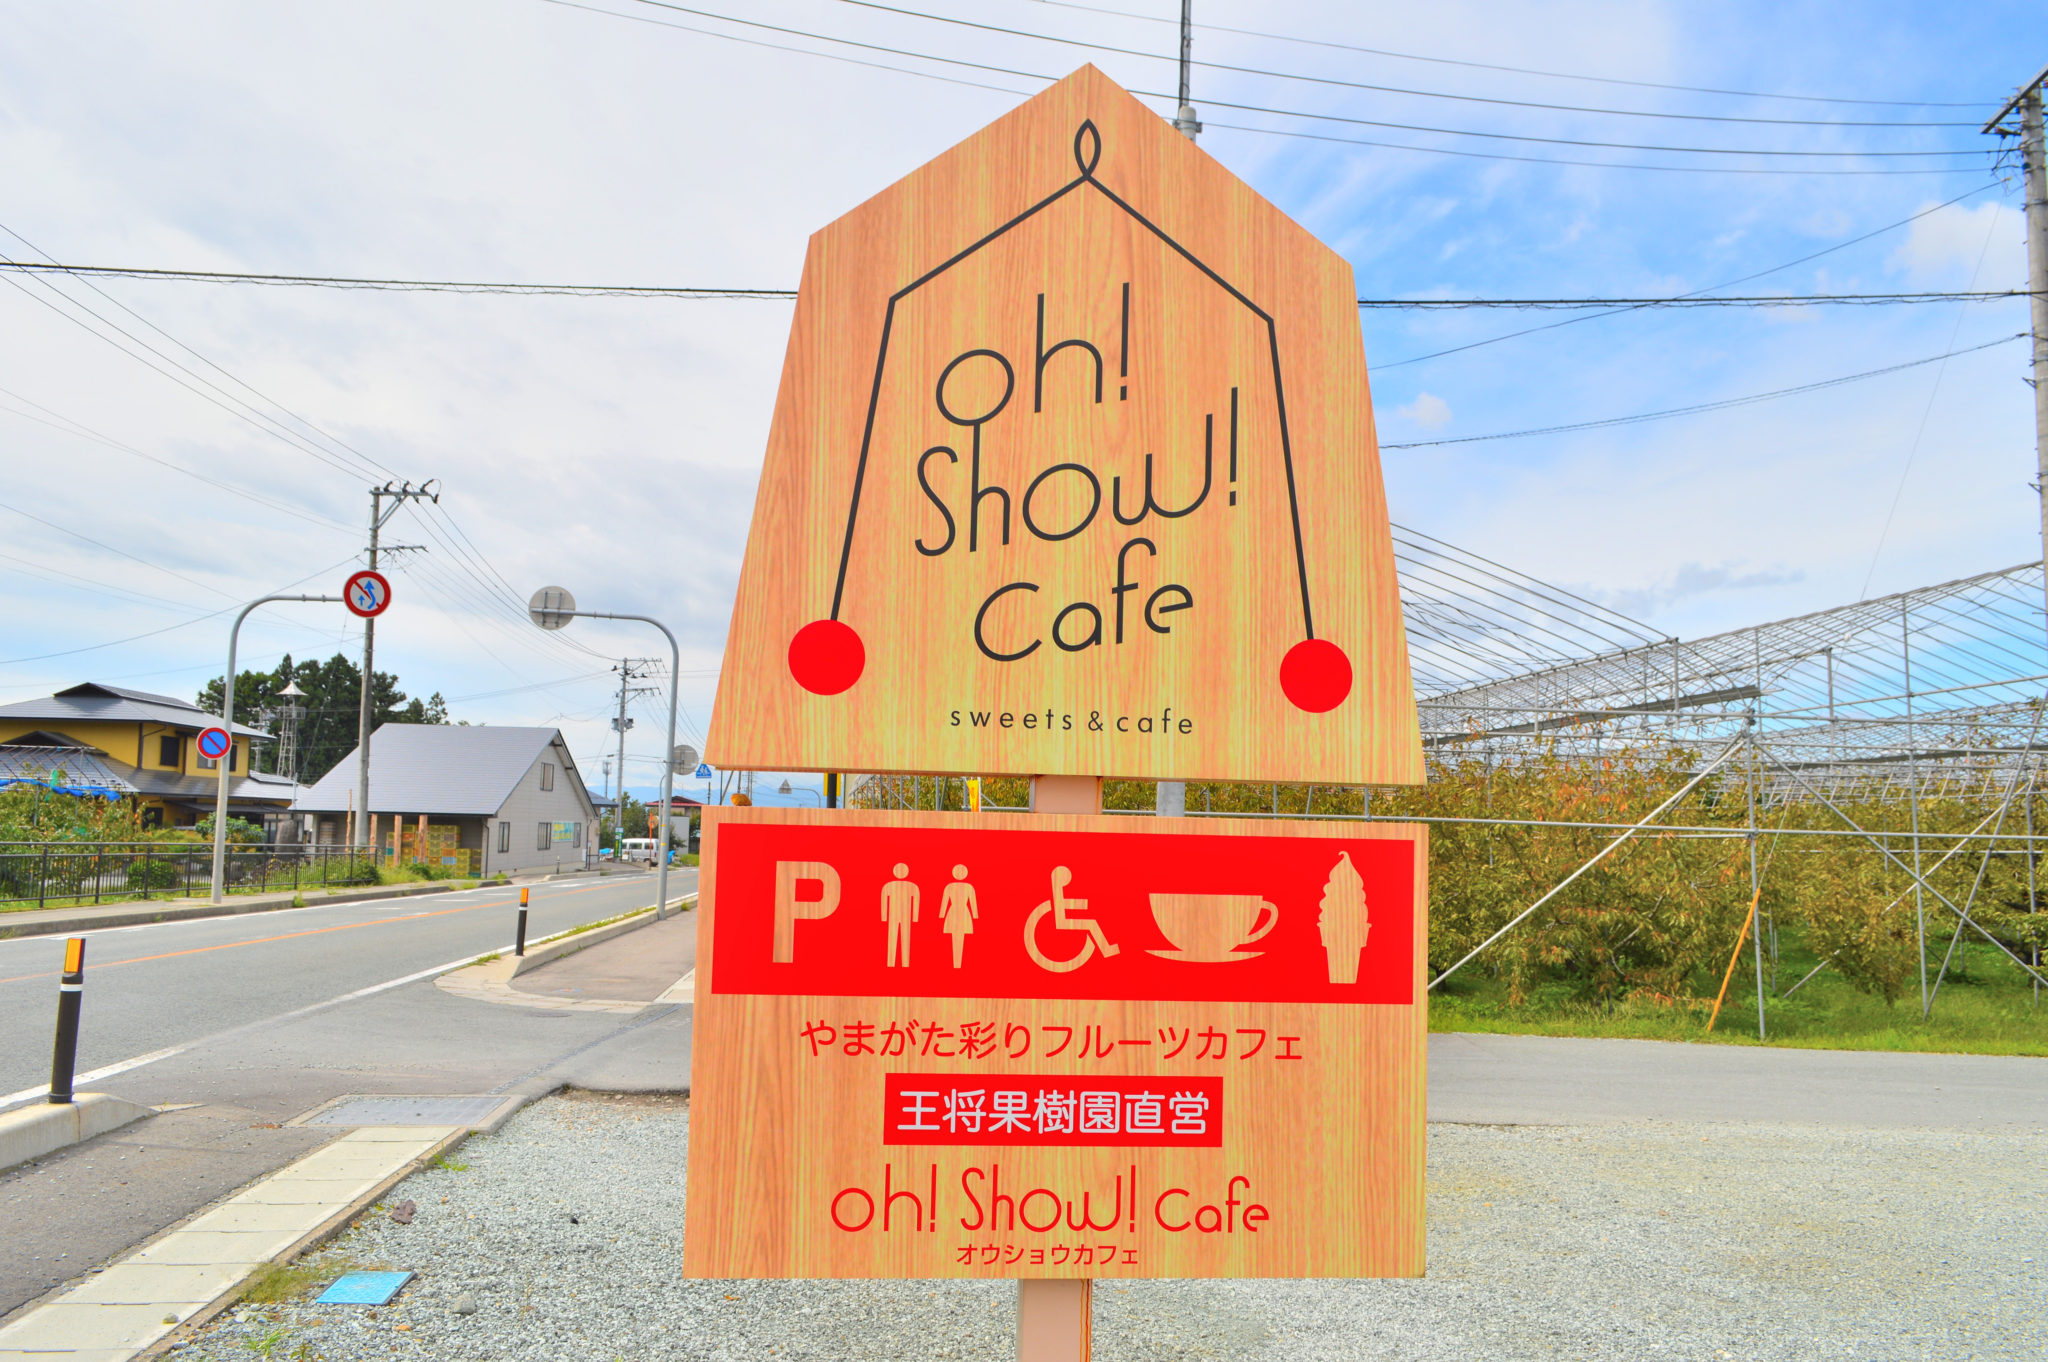 Oh!Show!Cafe 王将果樹園 (オウショウカフェ)